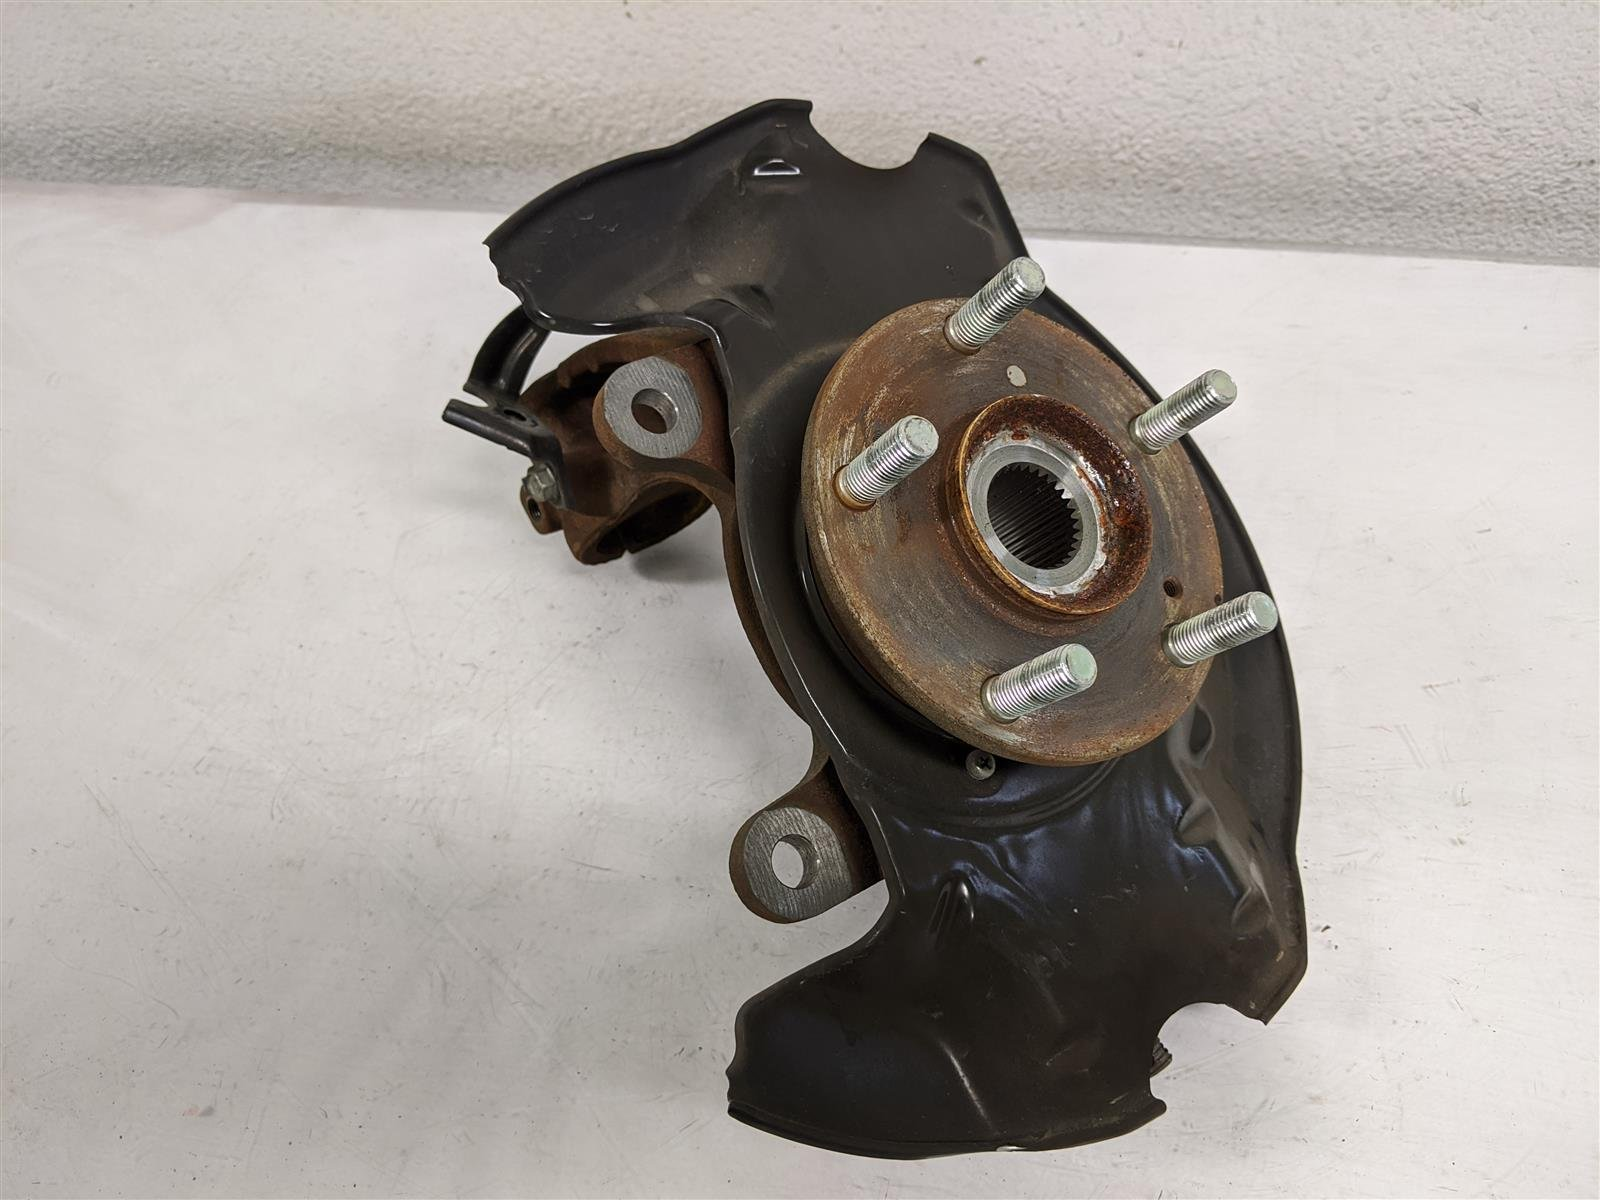 Sold 2015 Acura TLX 2wd Front Driver Spindle Knuckle Replacement